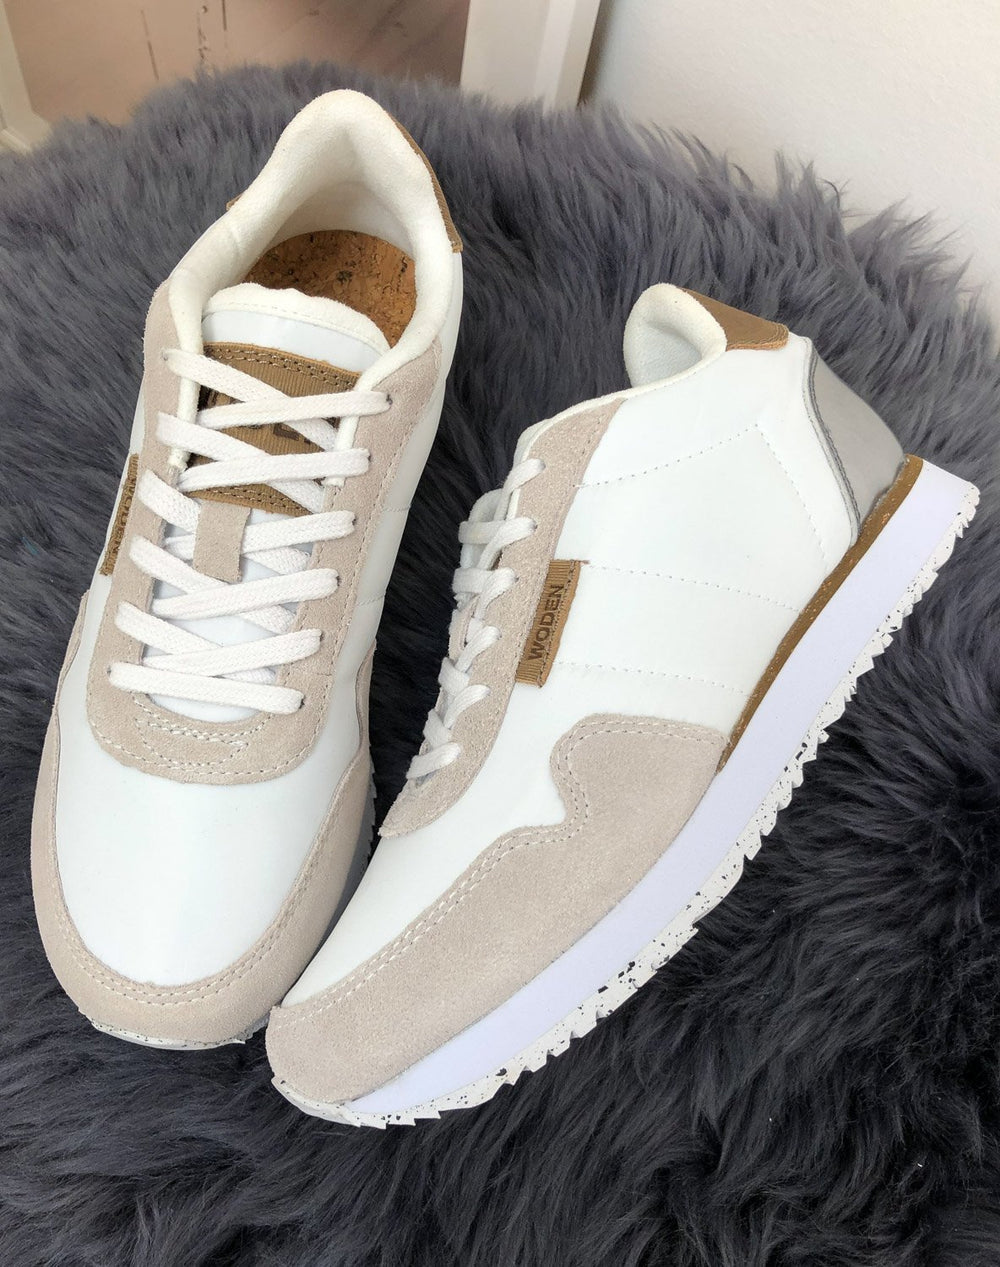 Woden Nora II sneakers bright white - Online-Mode